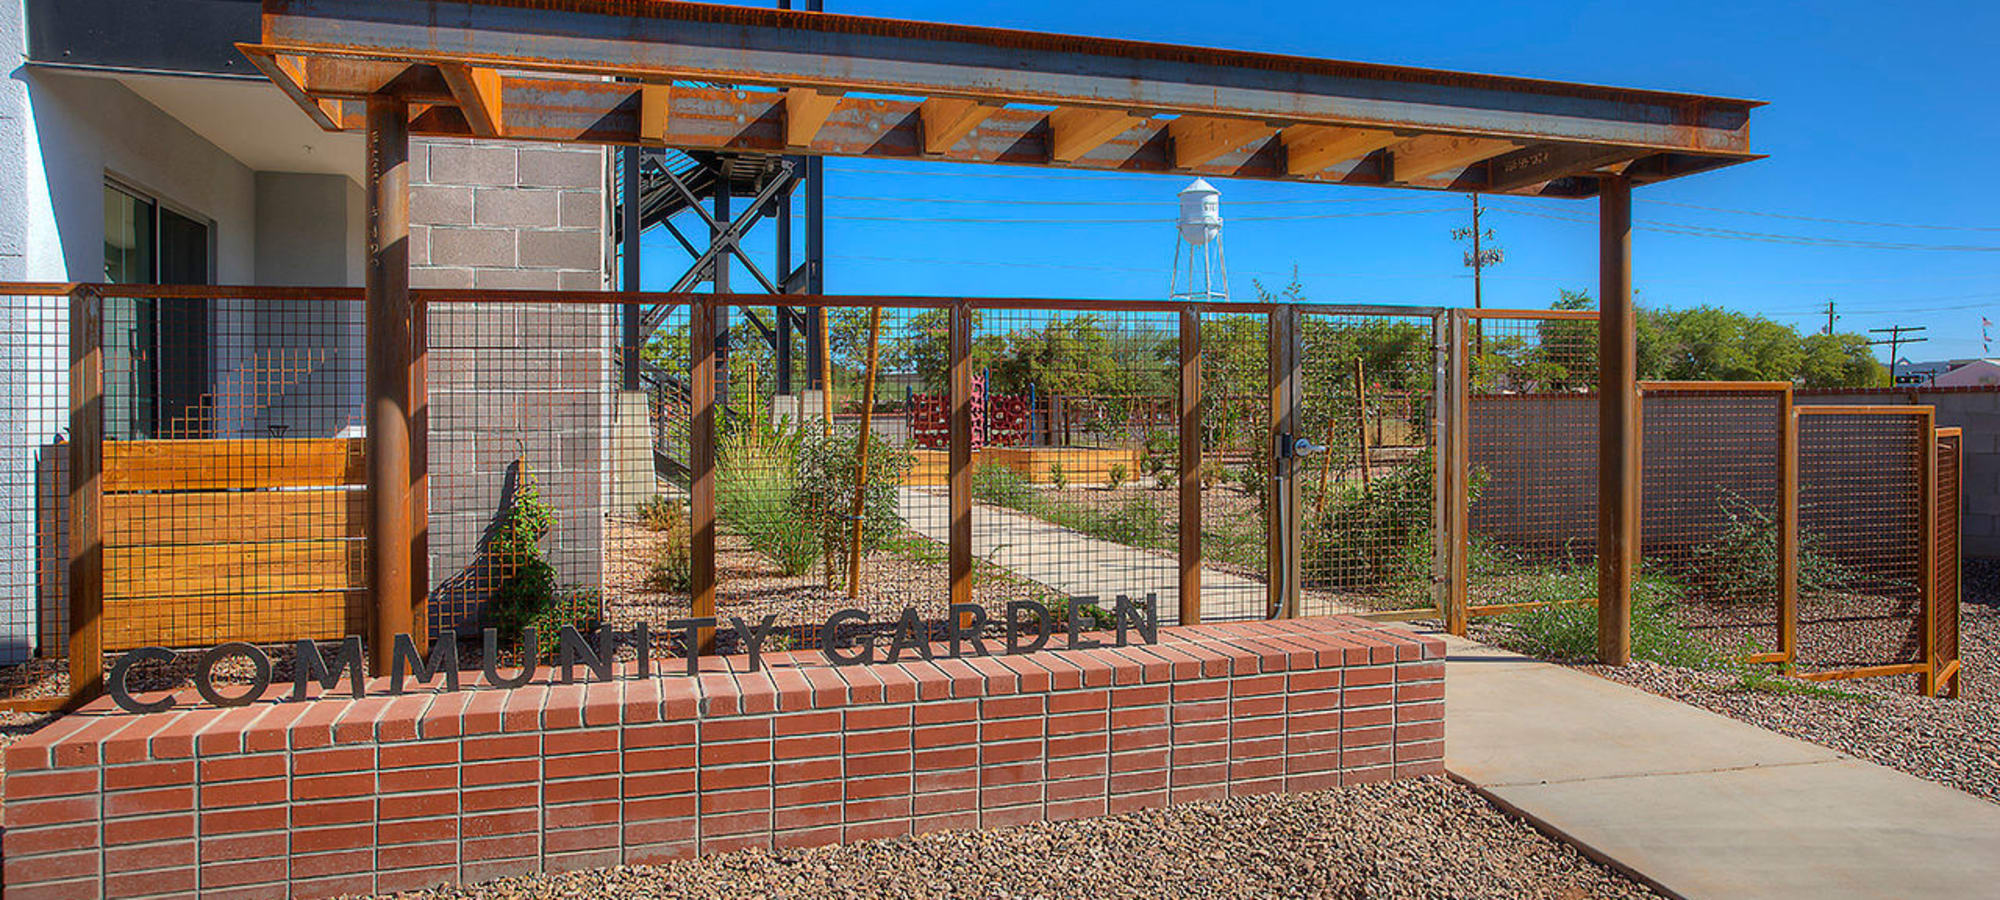 Beautiful community garden at District Lofts in Gilbert, Arizona